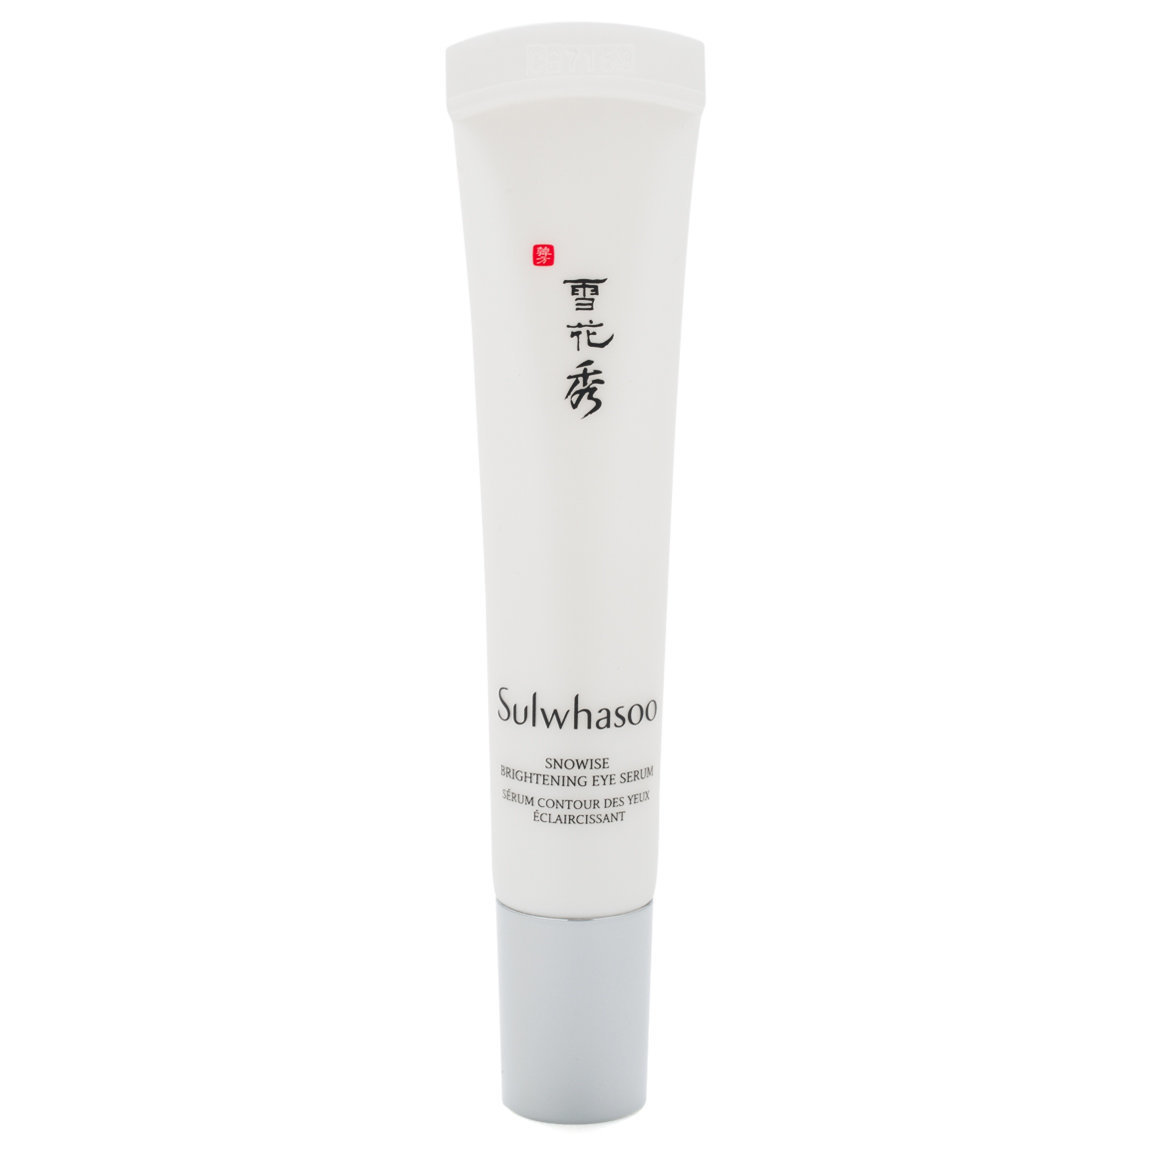 Sulwhasoo Snowise EX Brightening Eye Serum product smear.